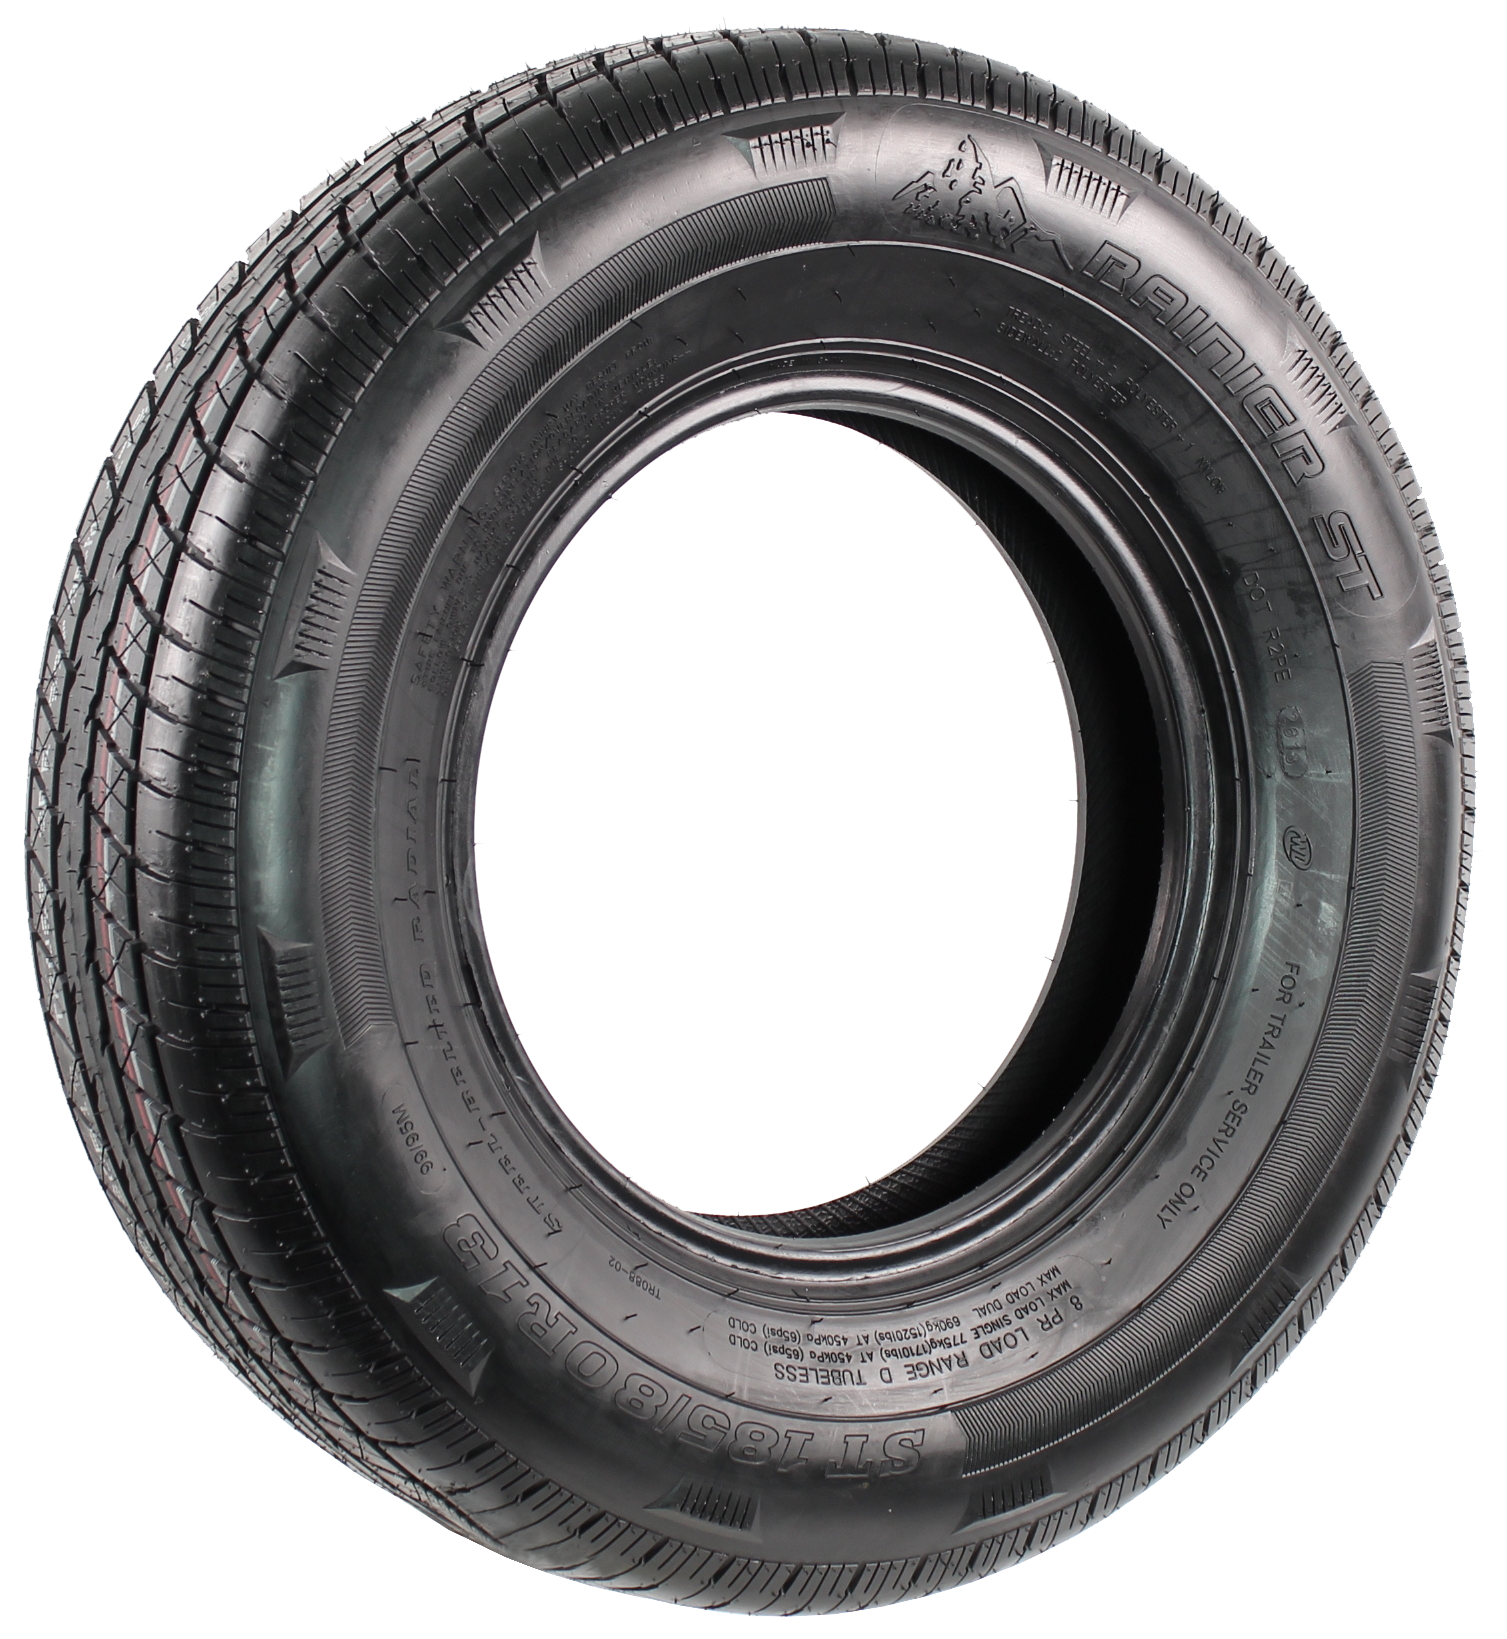 Rainier ST185/80R13 LRD 8-Ply Radial Trailer Tire Image